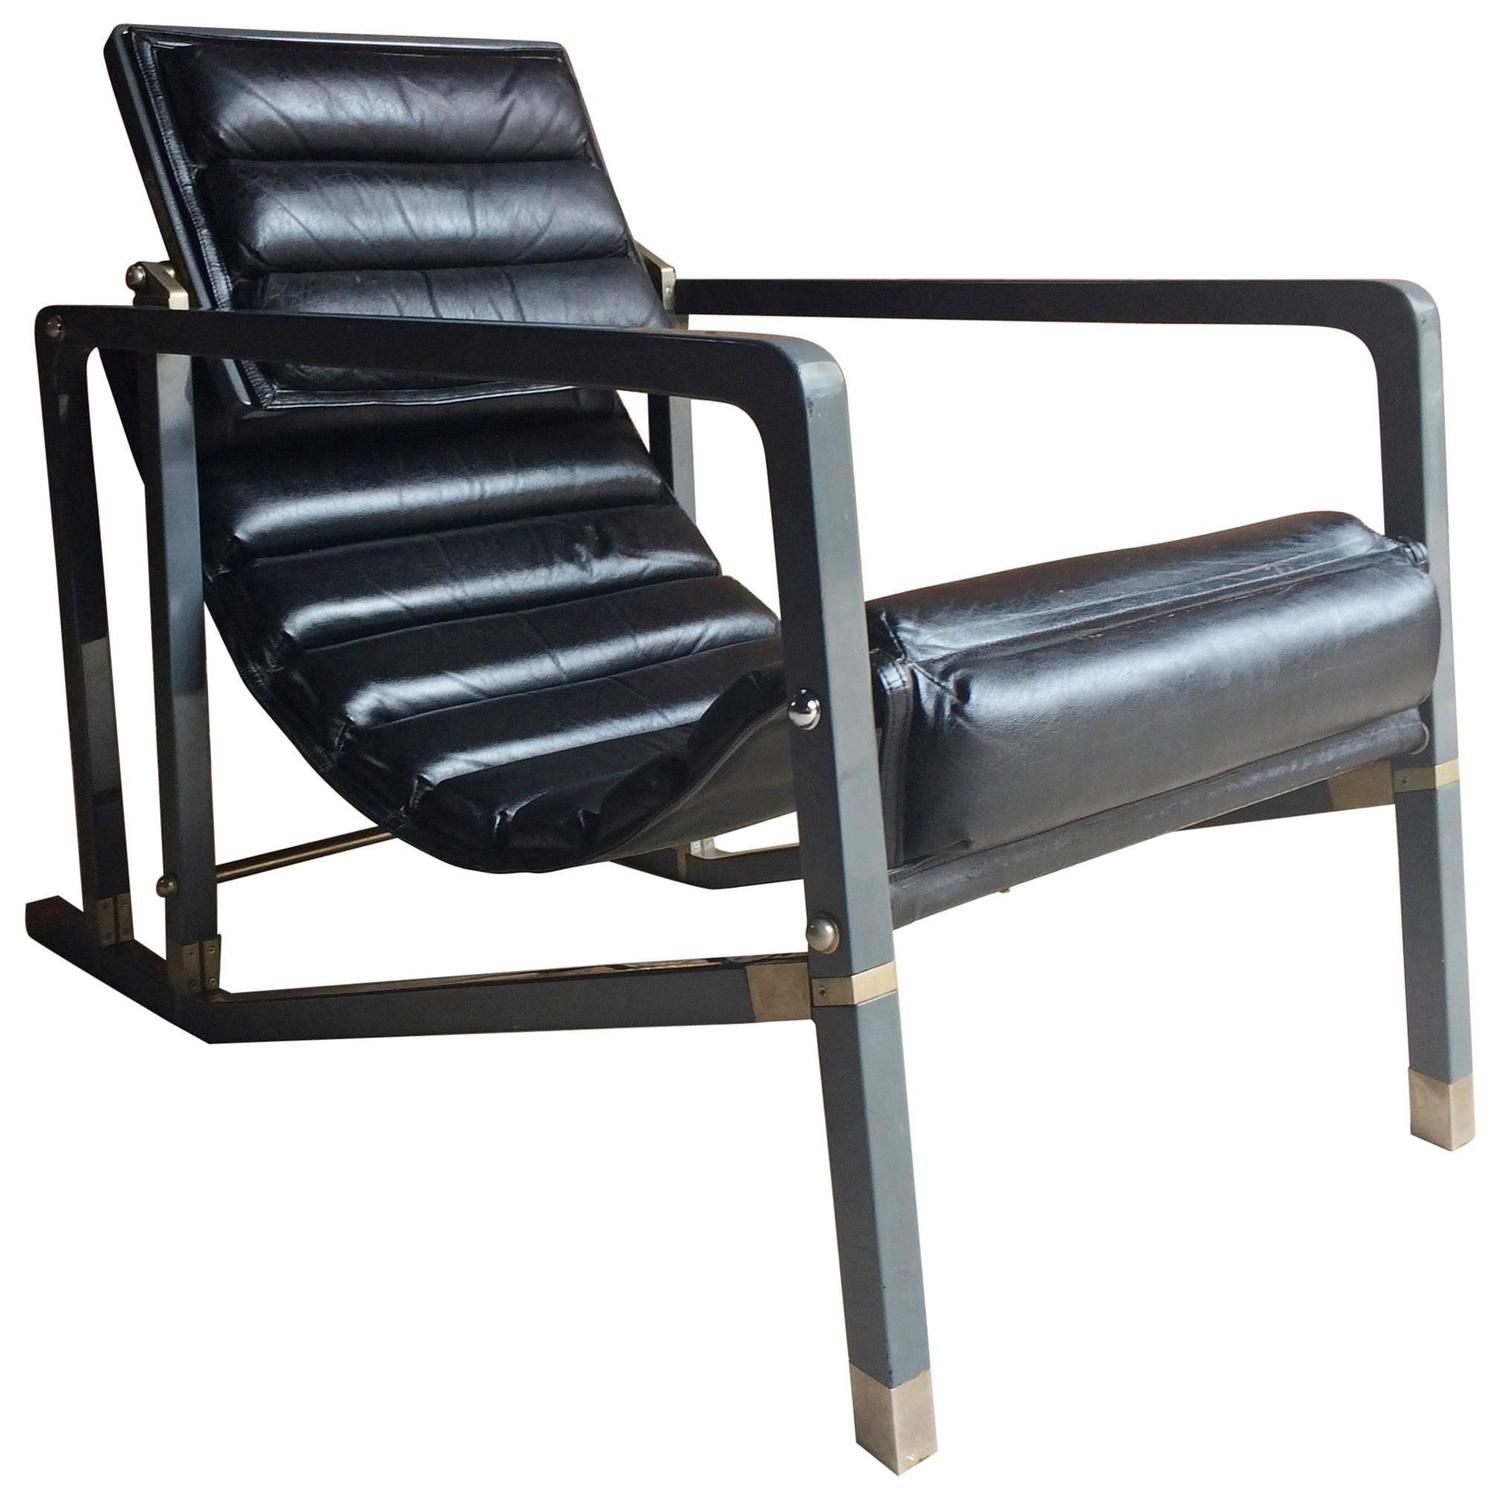 iconic transat chair by eileen gray manufactured by aram late 20th